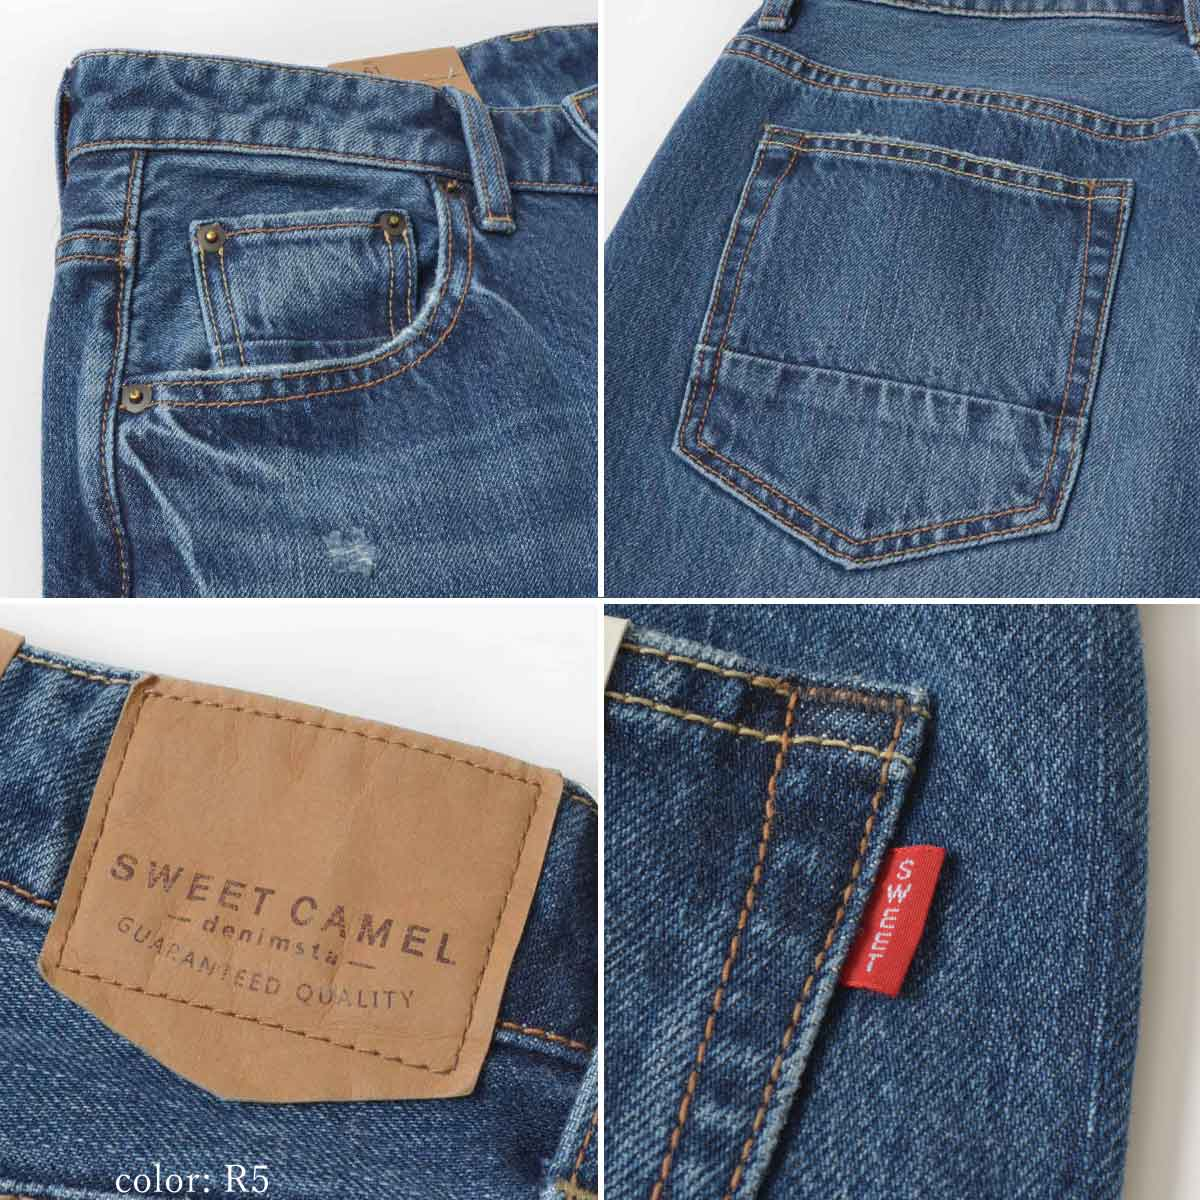 Sweet Camel denimstaTAPERED SC5388